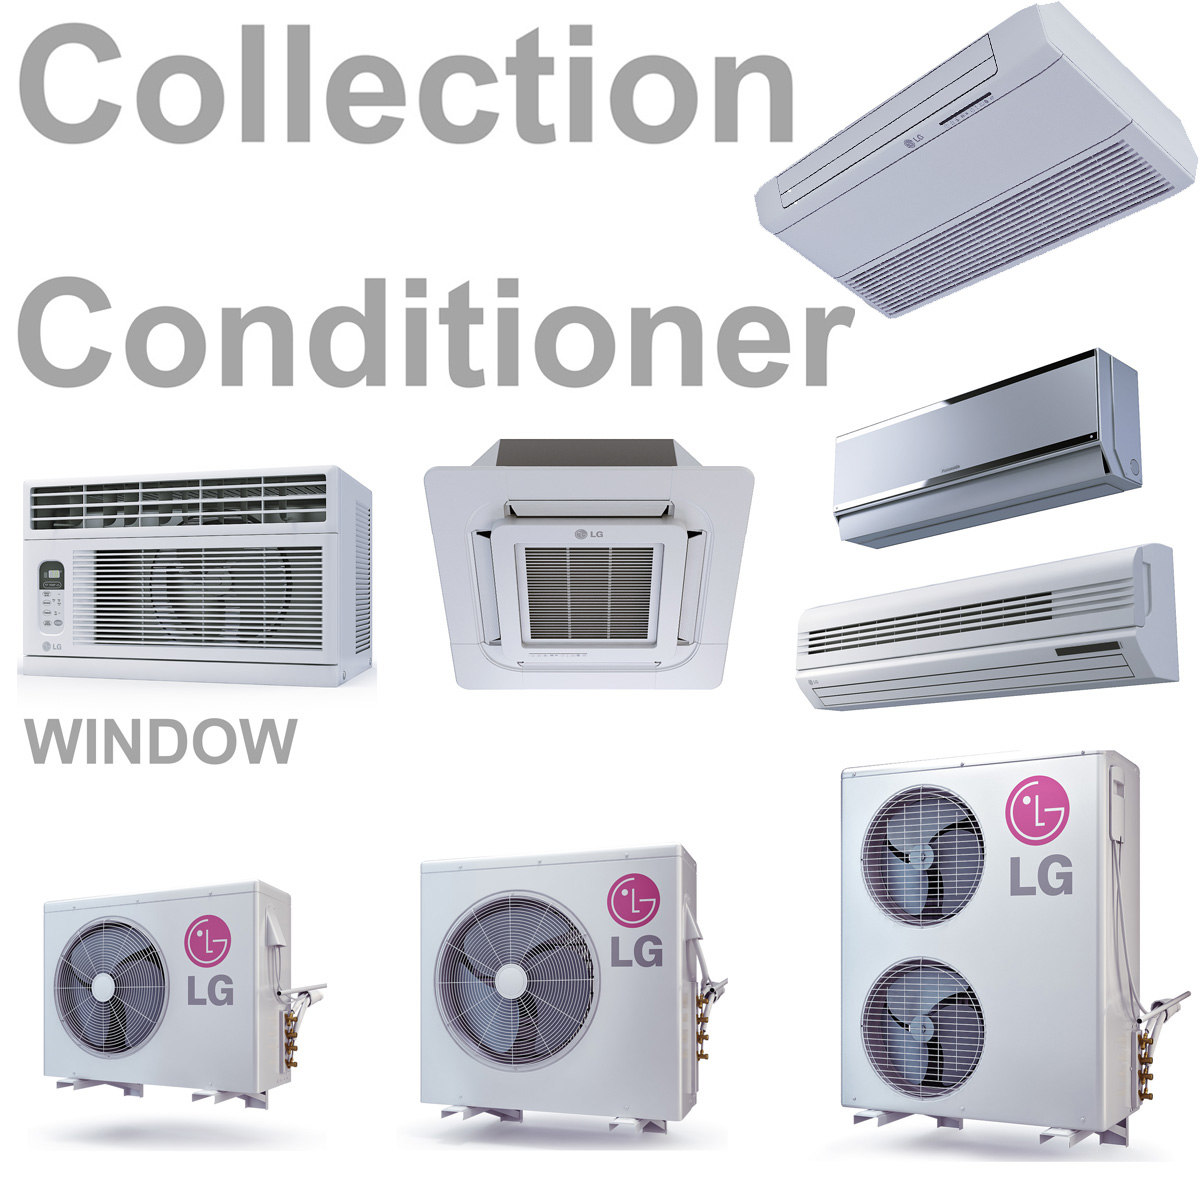 Collection_Conditioners.jpg